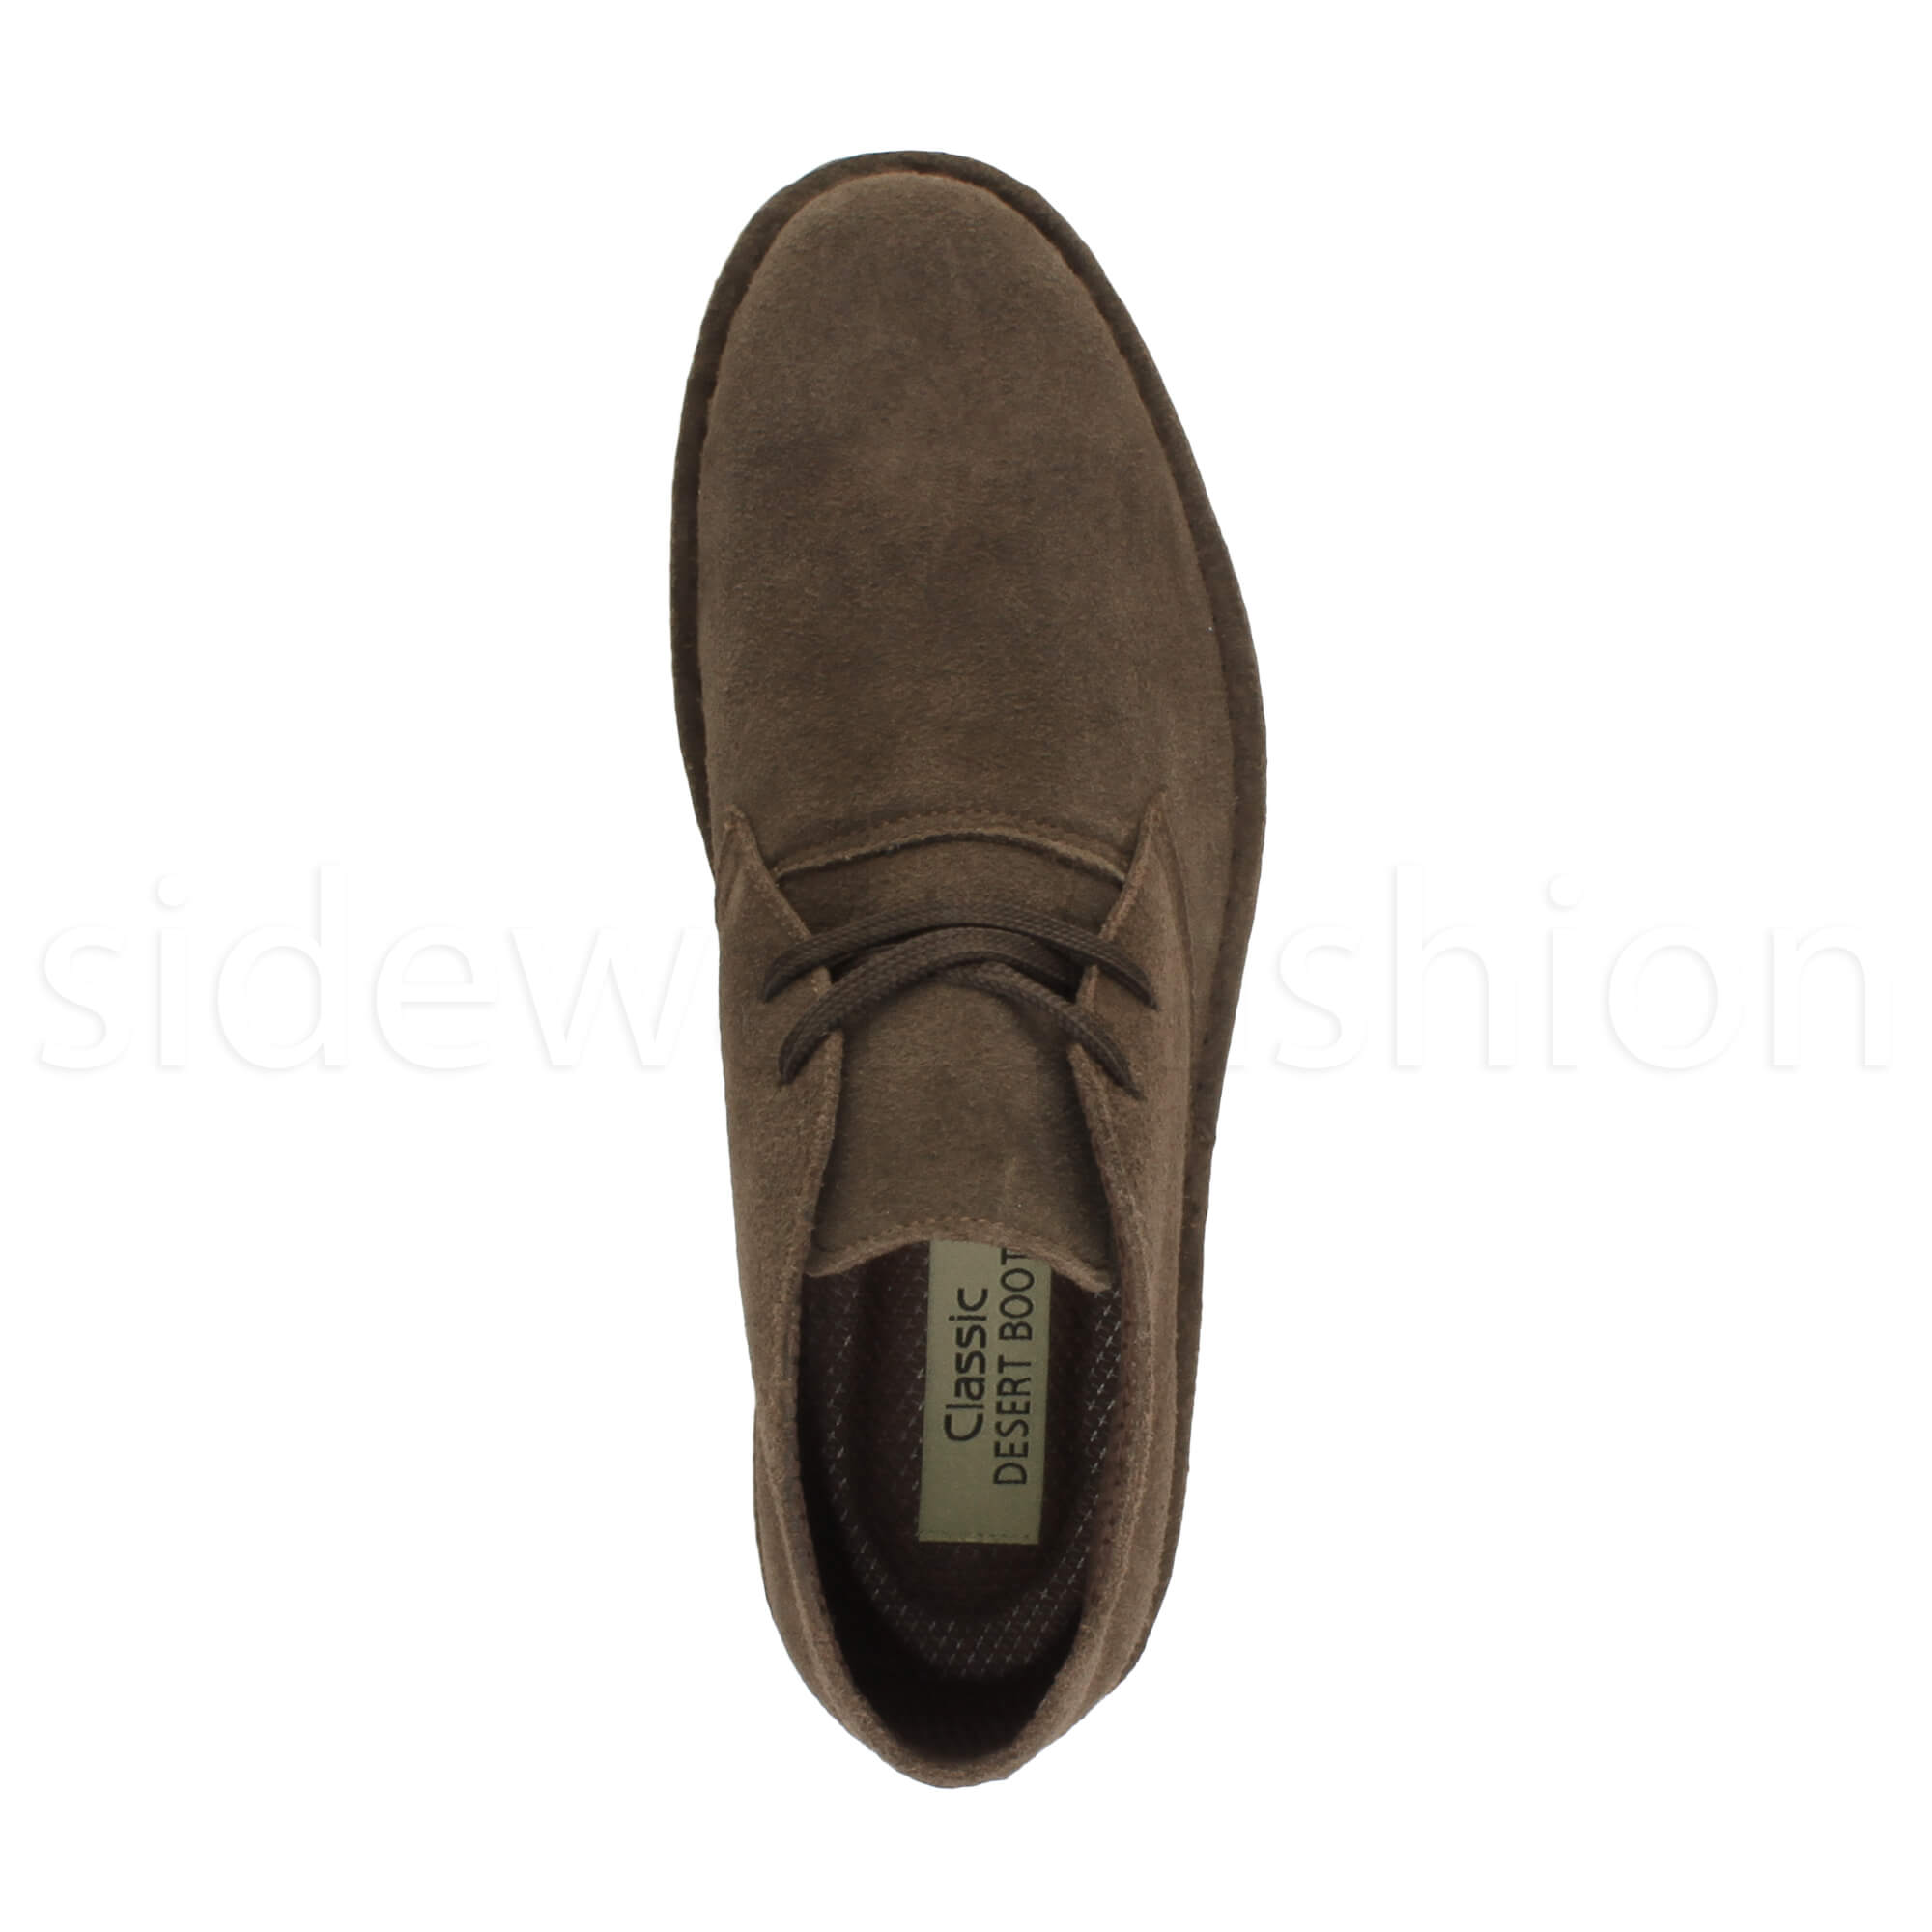 Mens-lace-up-rubber-sole-suede-ankle-chukka-desert-boots-classic-shoes-size thumbnail 14